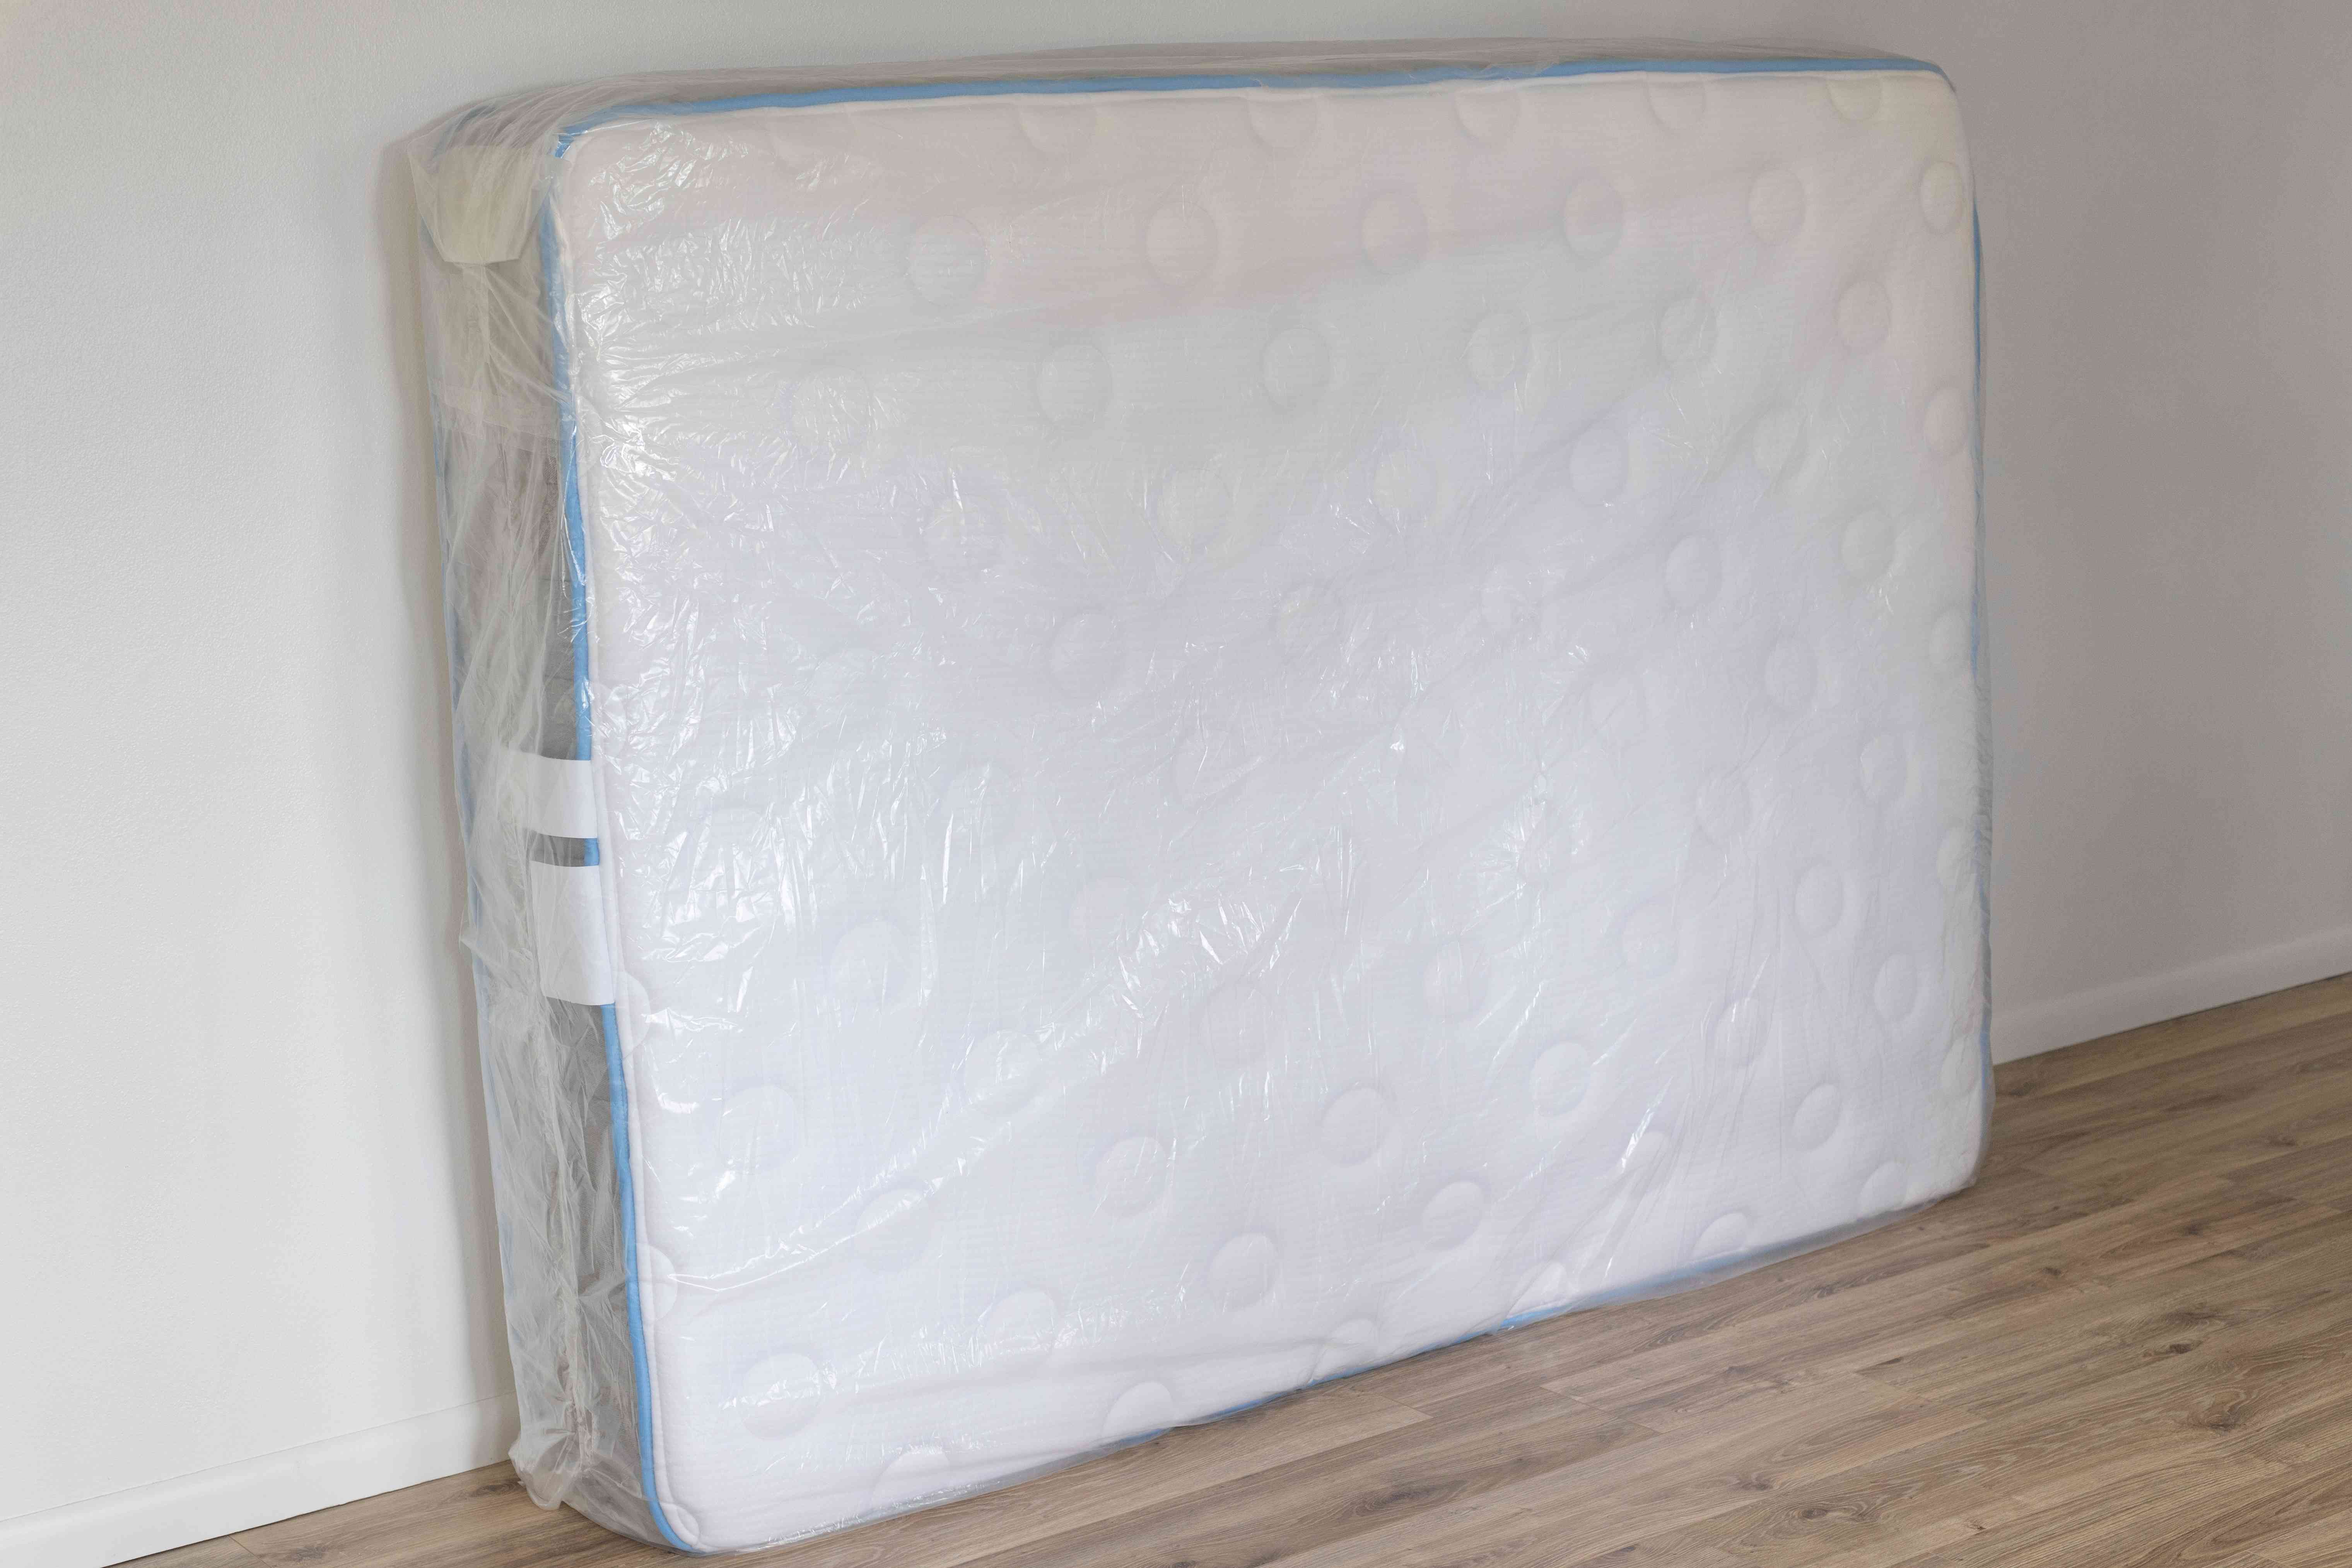 Mattress in clear mattress bag stacked on its side and leaning on wall